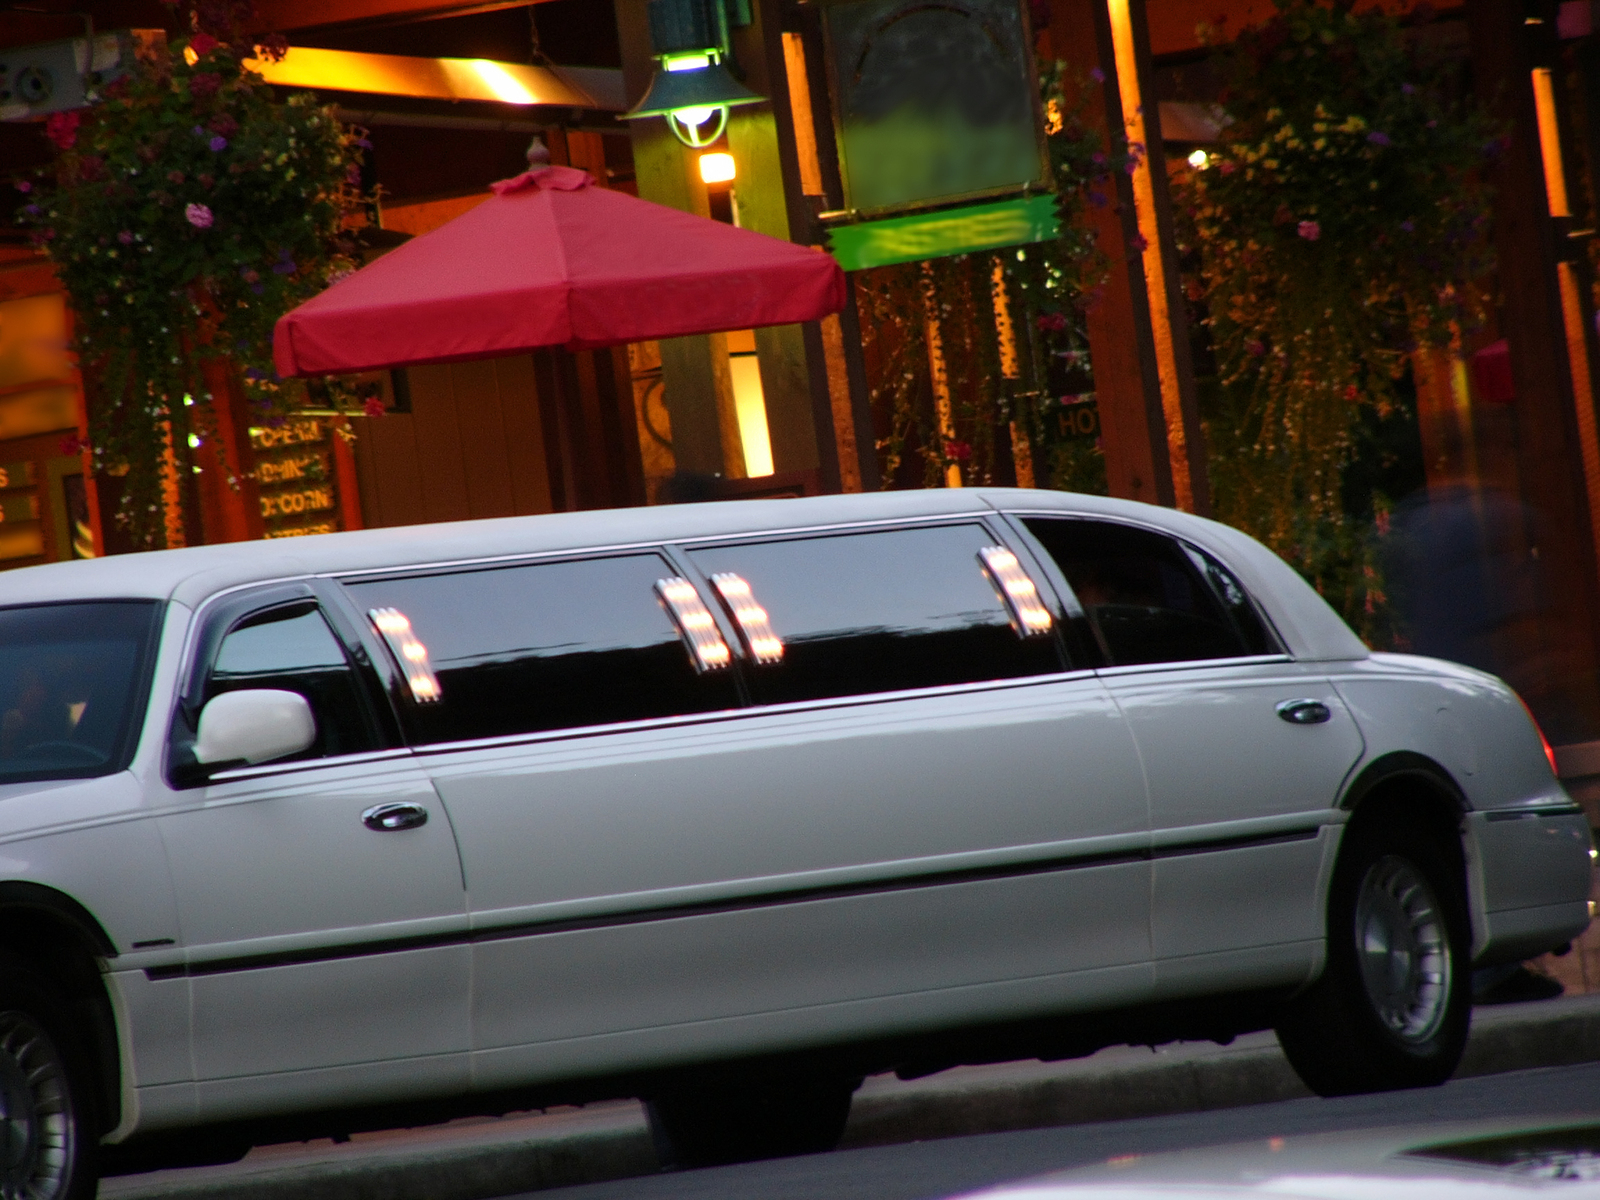 Danbury Limo Services Limo Rental & Limousine Services in